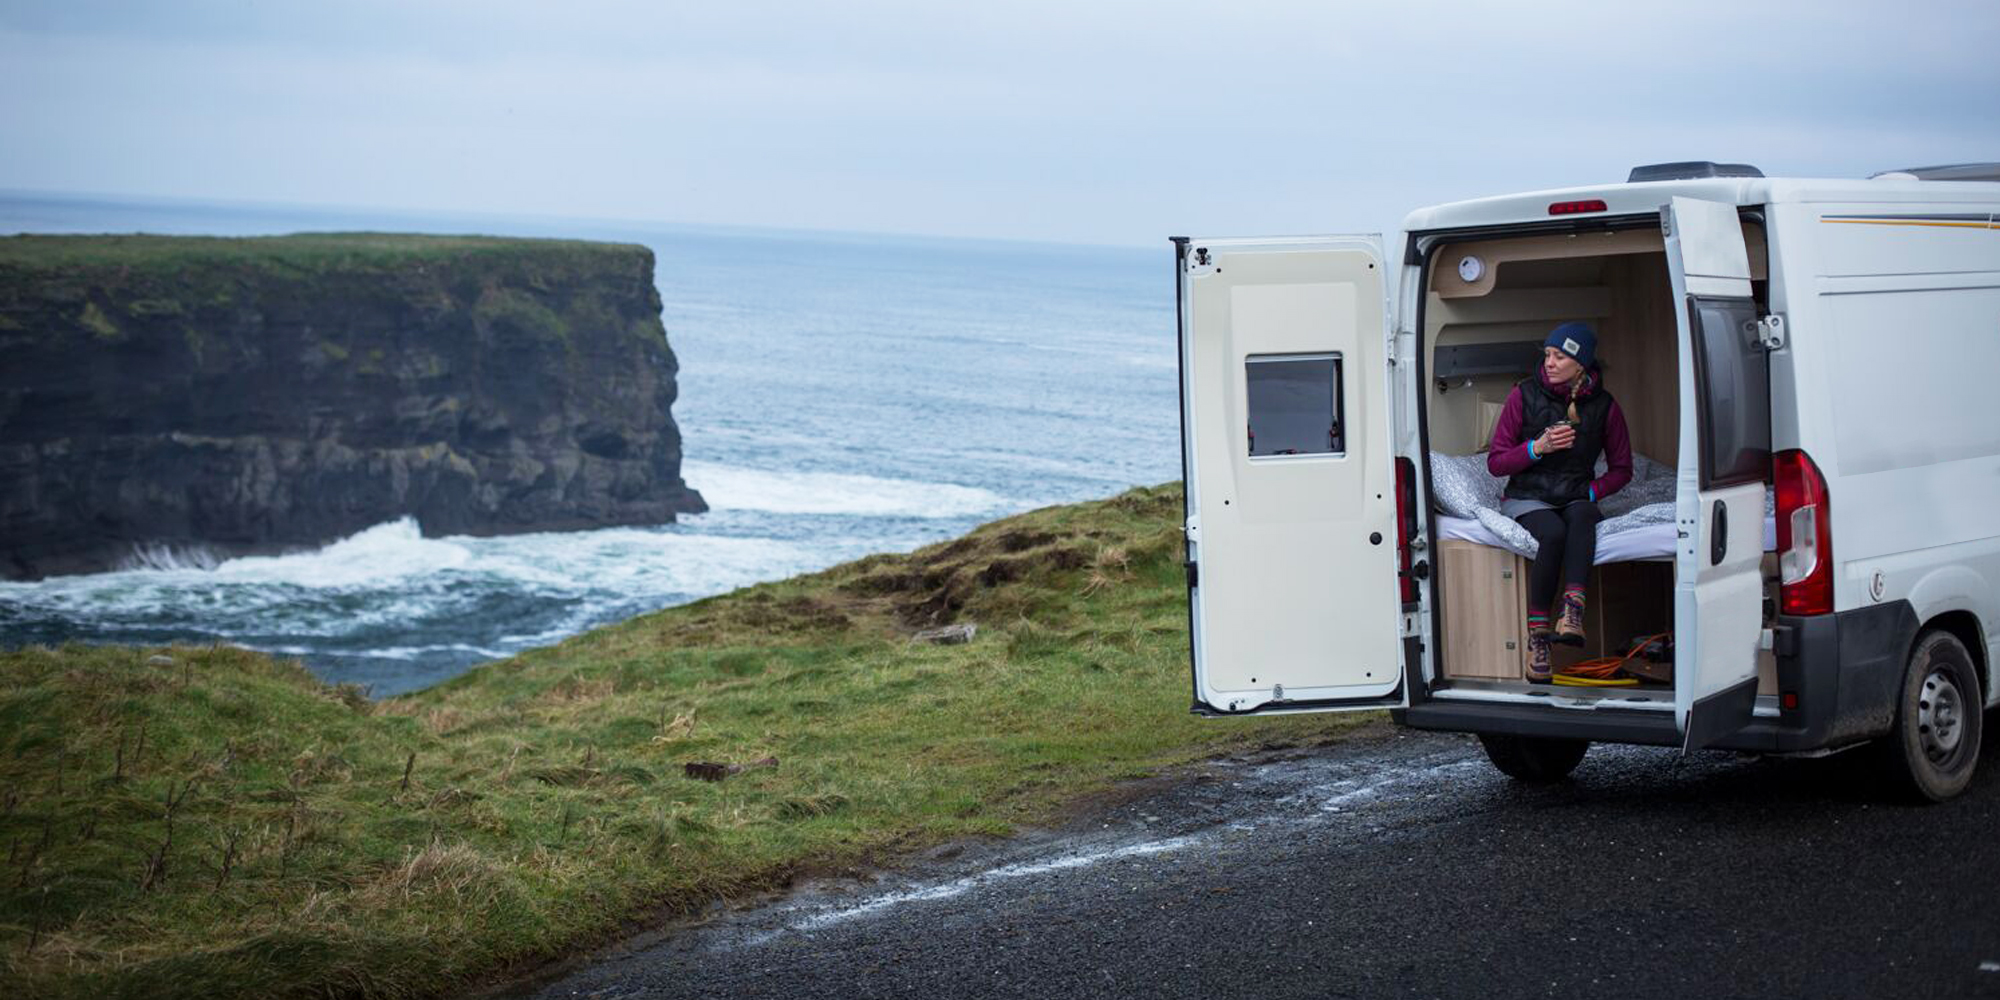 van by the ocean